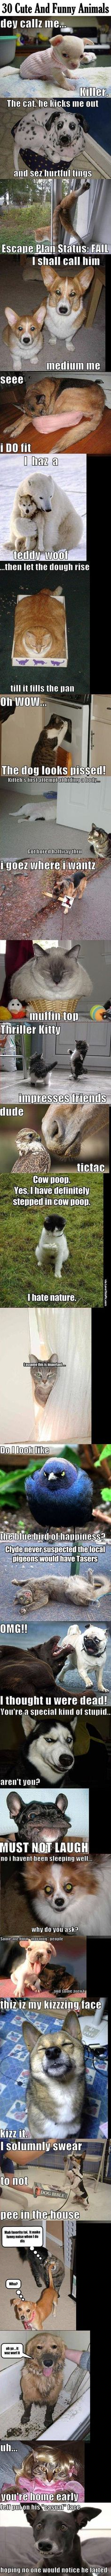 30 Cute And Funny Animals